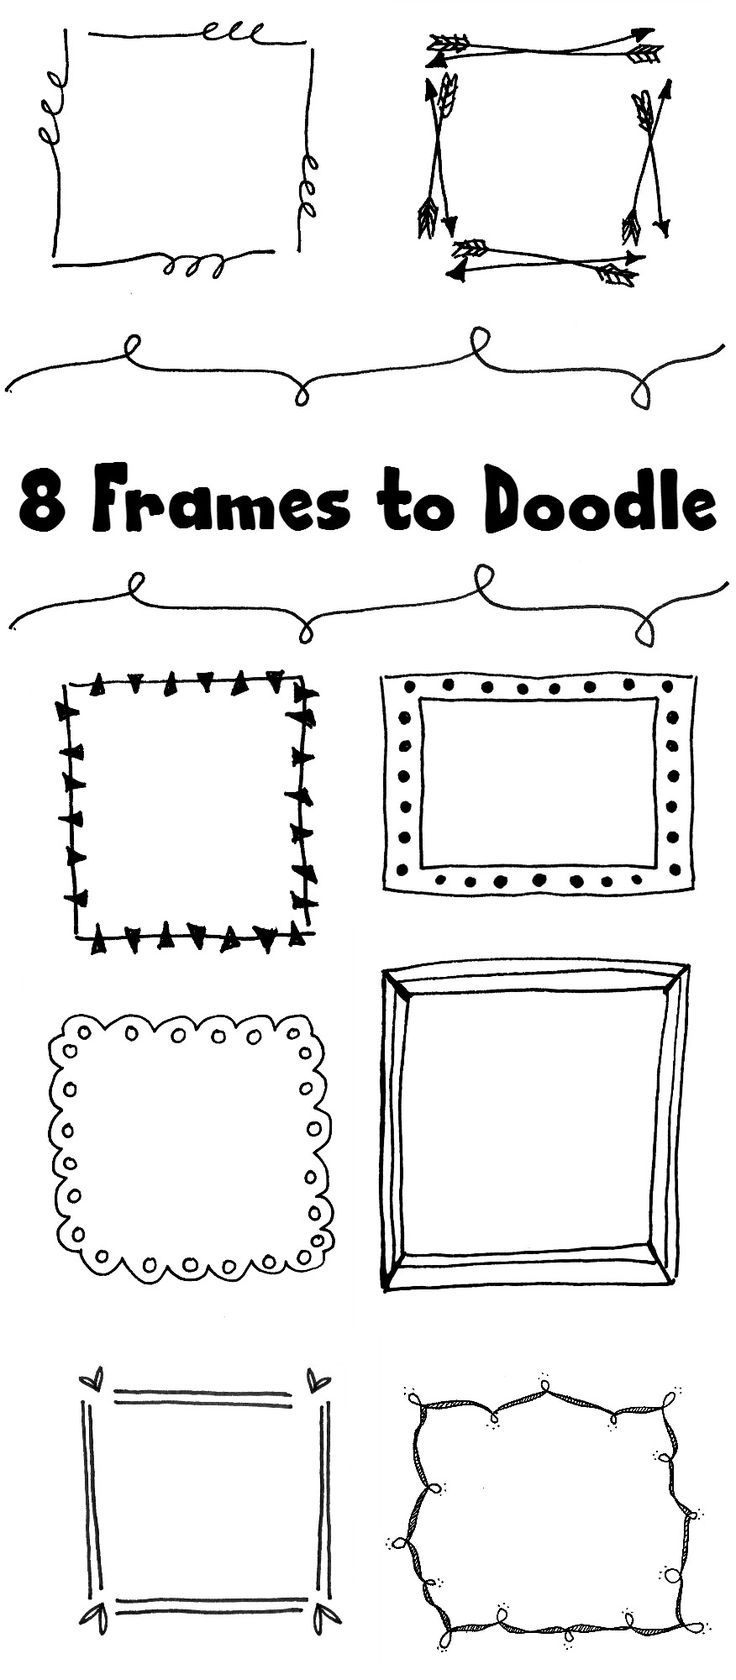 Drawn frame Frames ideas to on Doodle